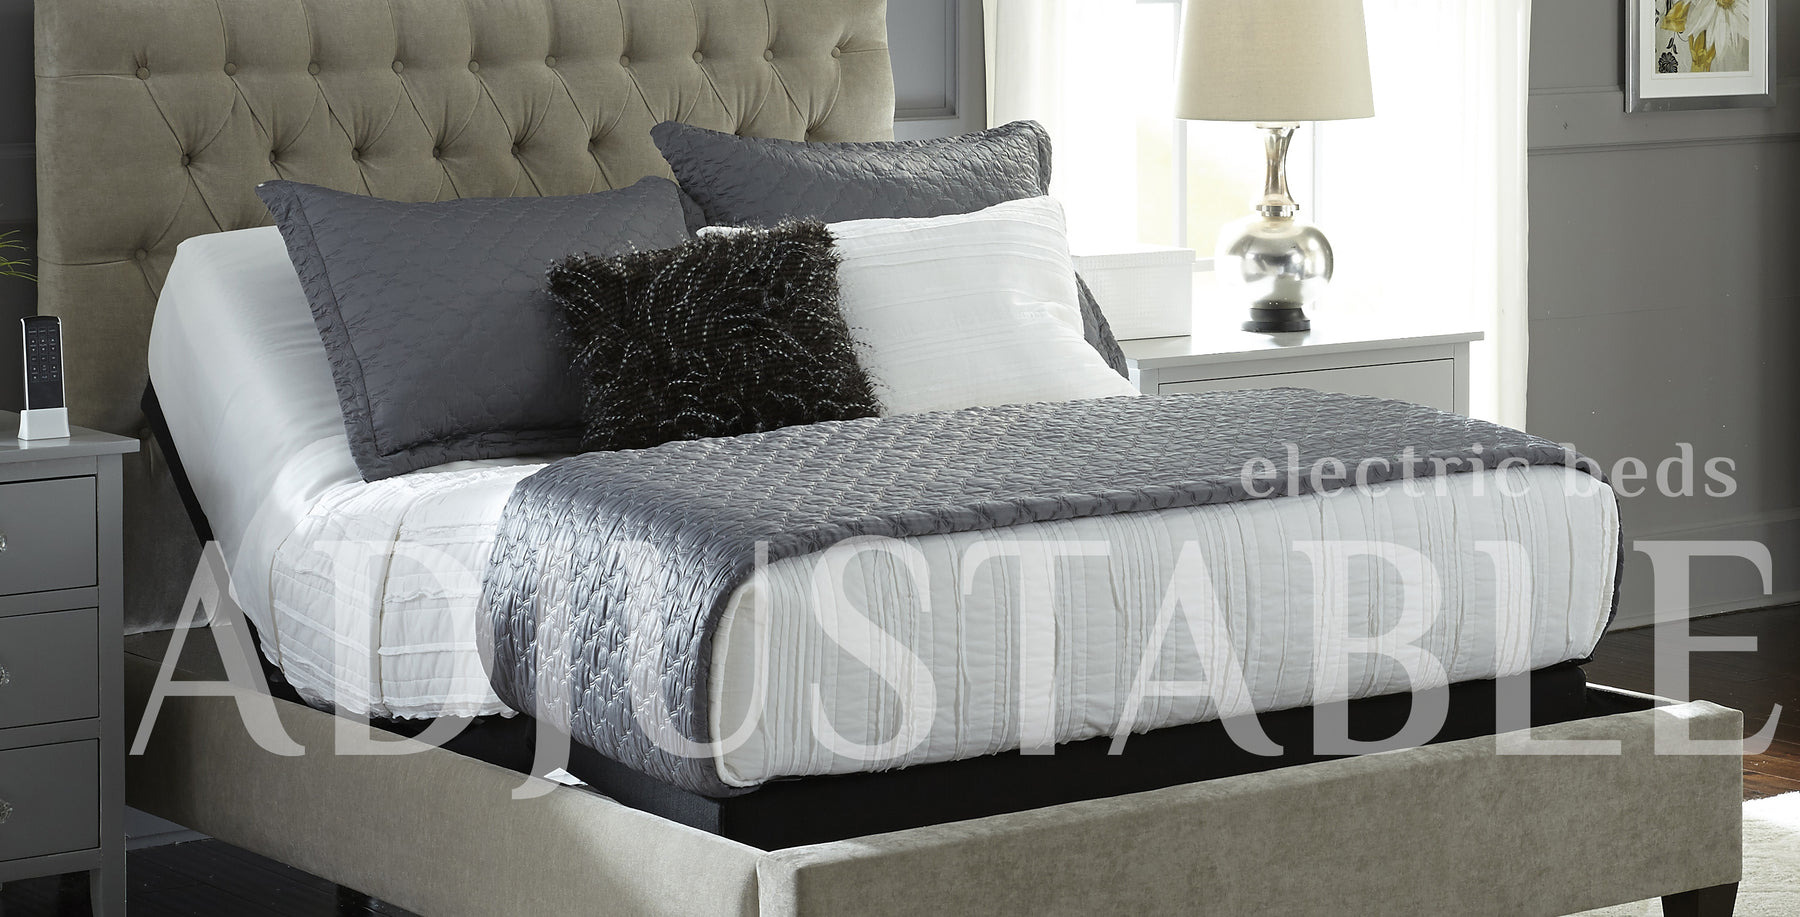 Purchasing an Electric Adjustable Lifestyle Bed is a Great Decision